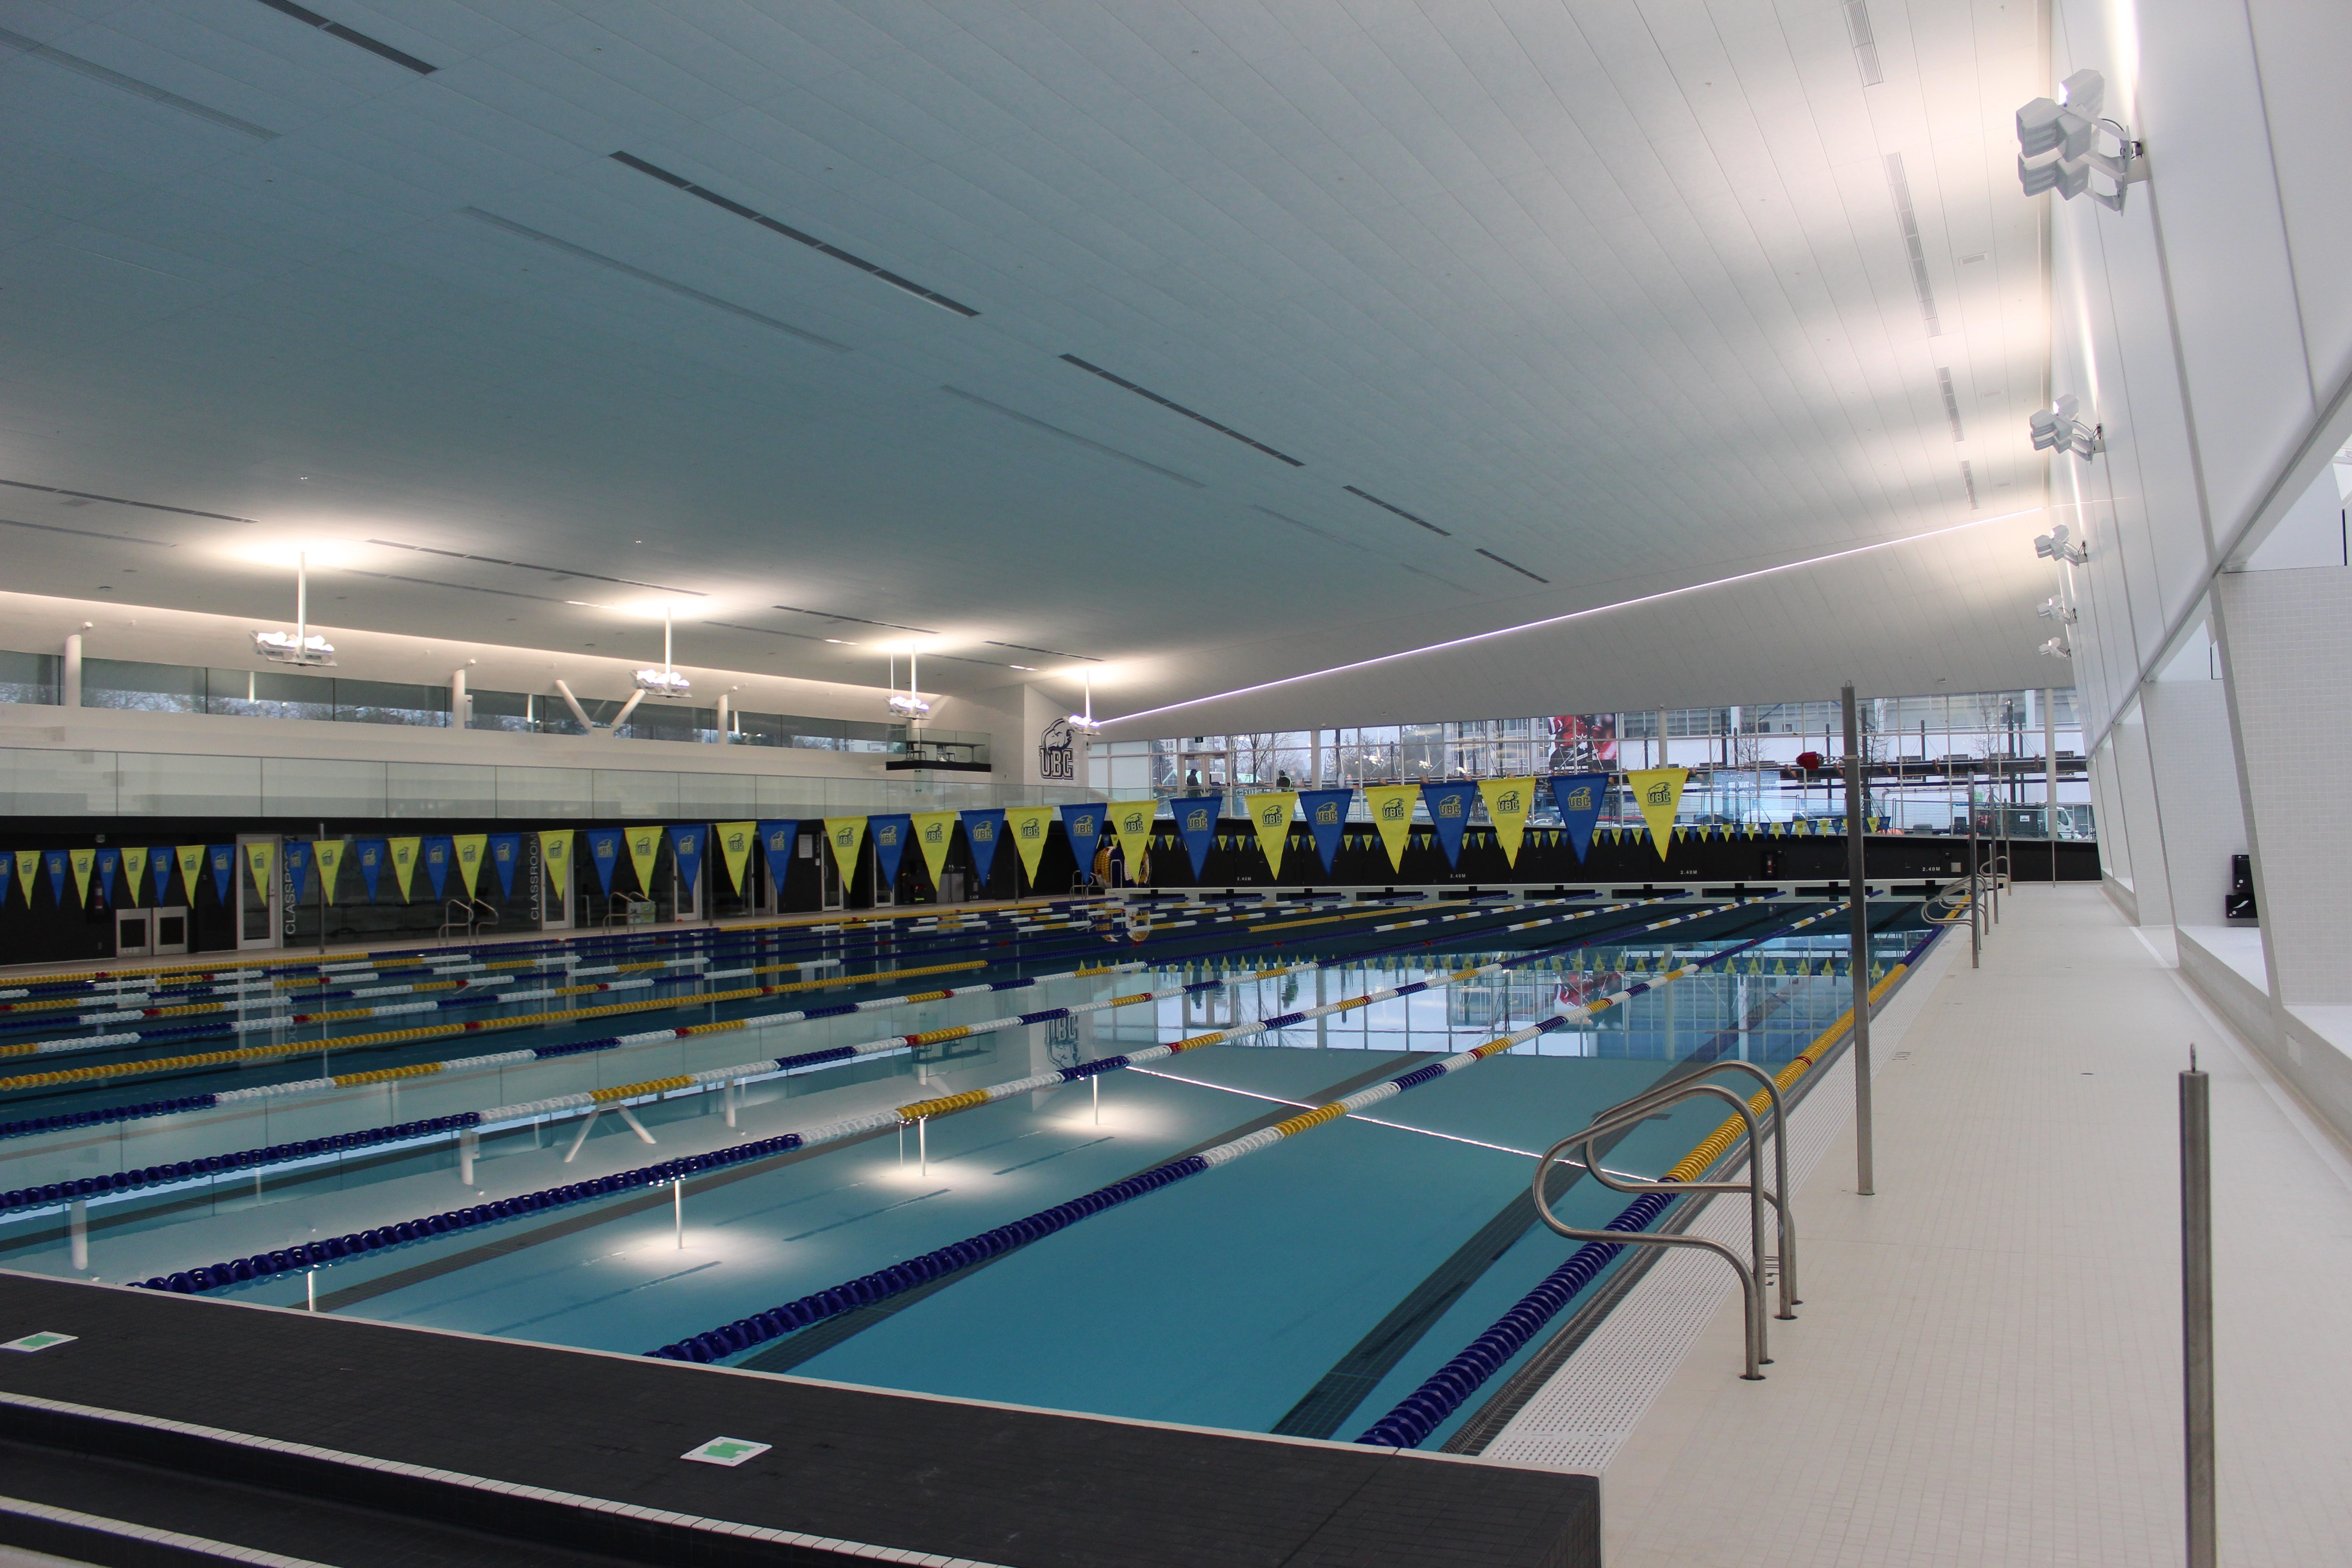 New Aquatic Centre Open To The Public On January 23